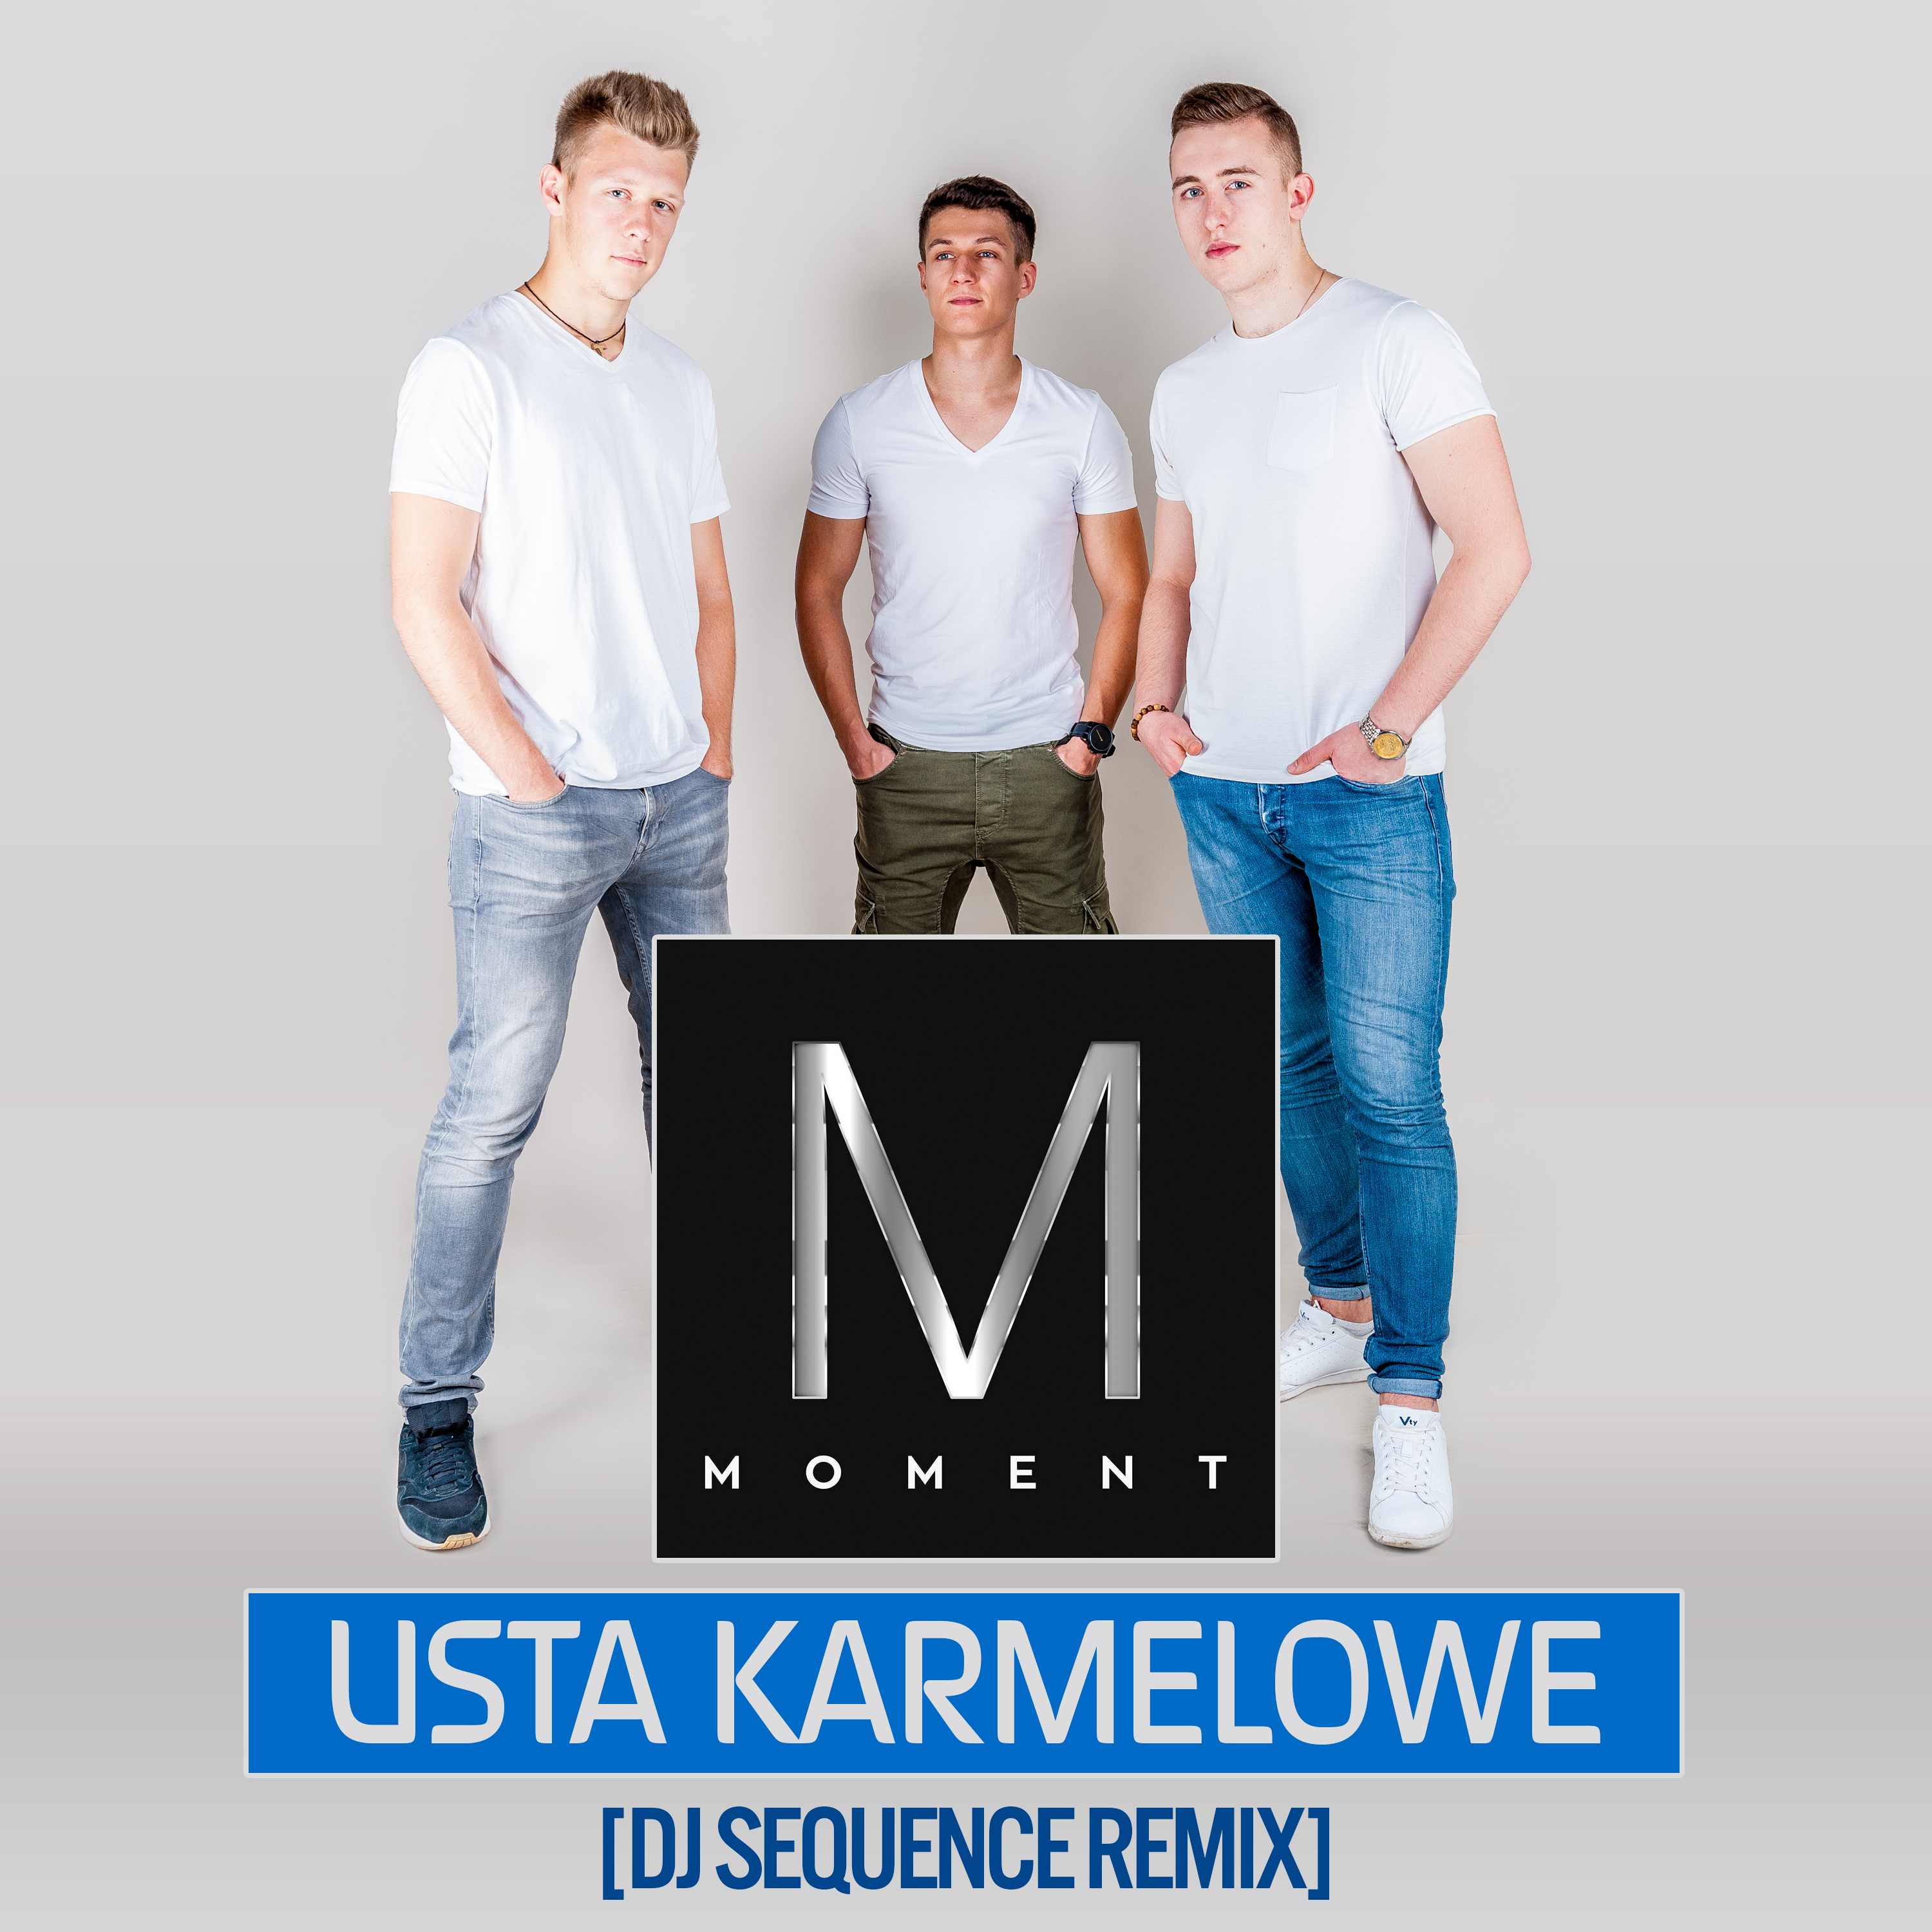 Moment - Usta Karmelowe (DJ Sequence Remix)